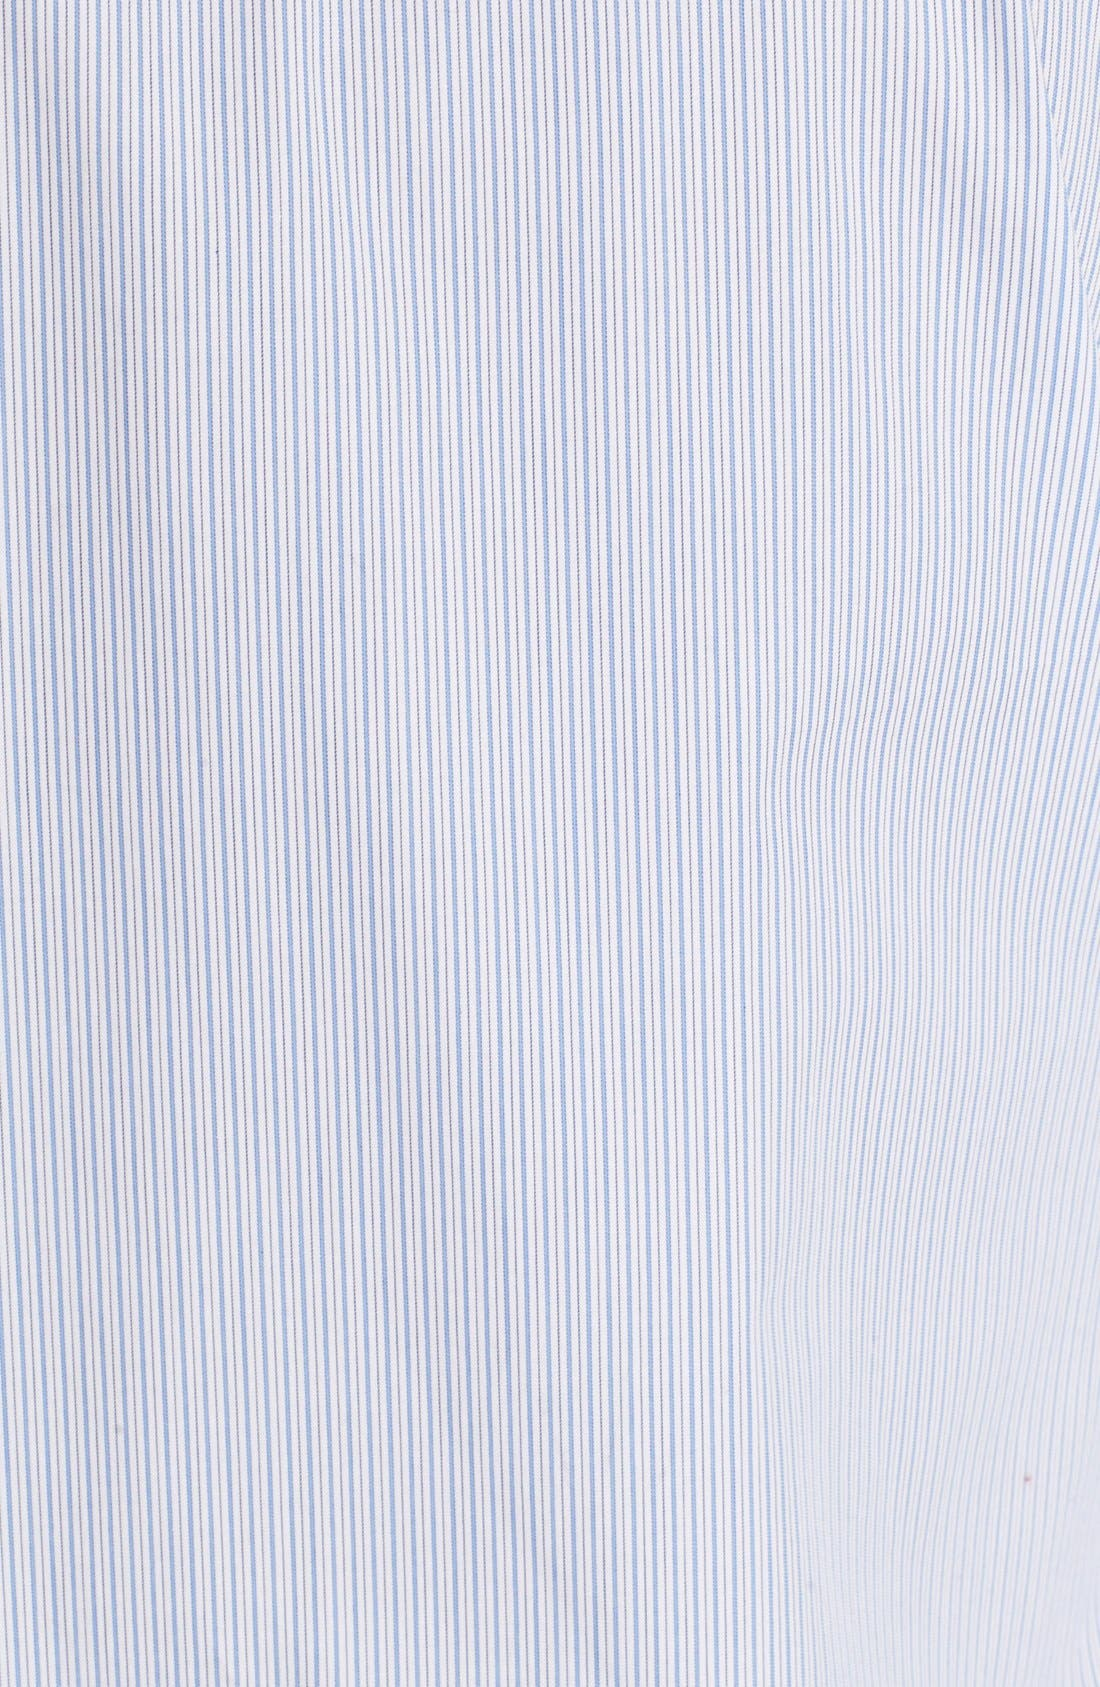 'Brett' Stripe Shirtdress,                             Alternate thumbnail 3, color,                             Periwinkle Blue/ Bright White